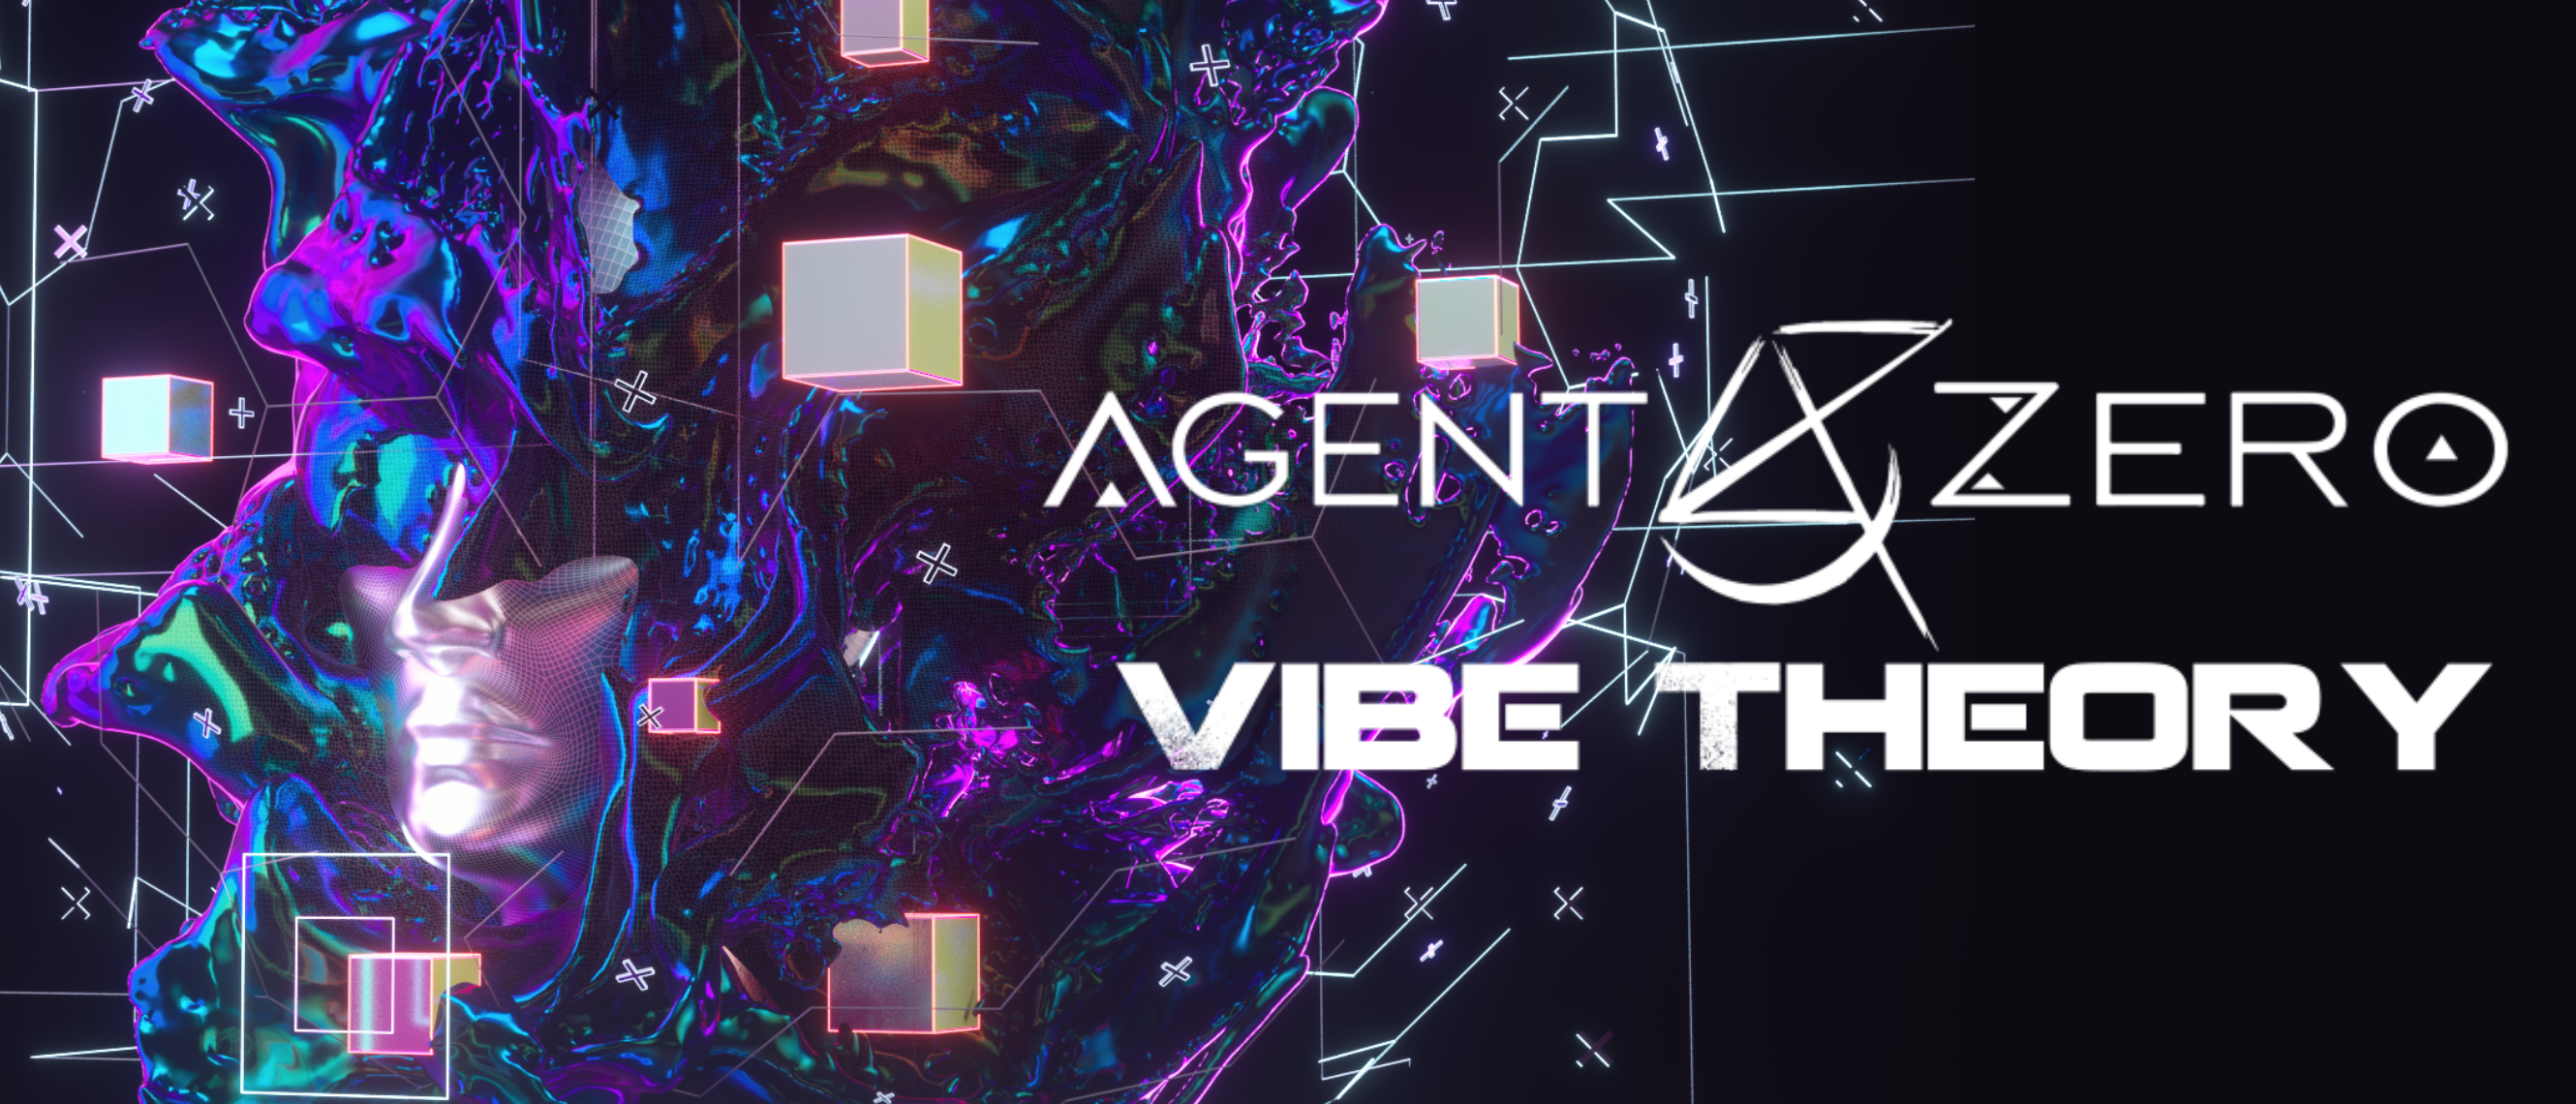 """Vibe Theory"" EP From Philly Based Duo Agent Zero [MHSM Blog Premiere]"